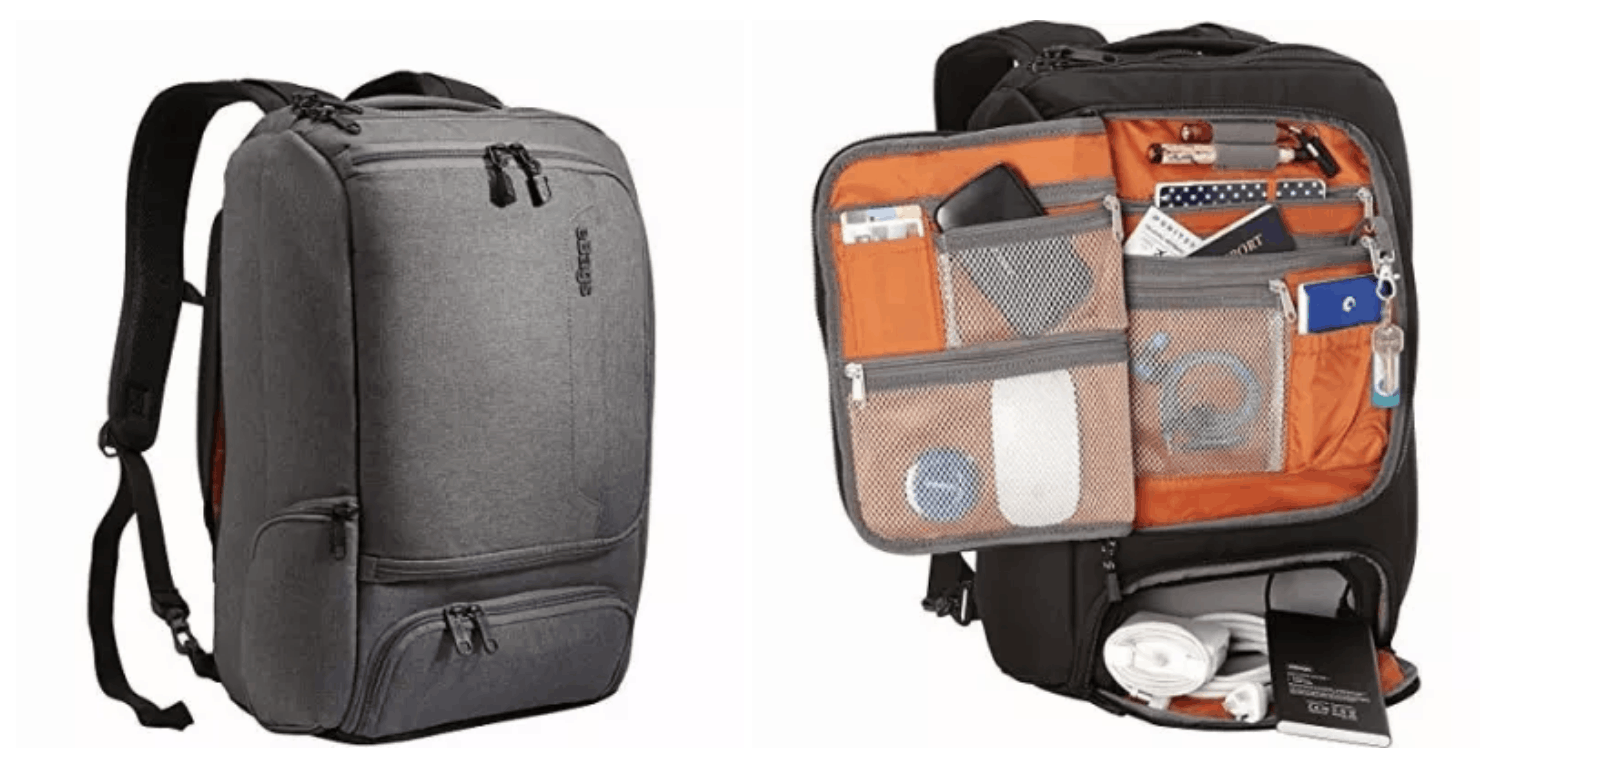 [Image description: Utilitarian backpack with multiple compartments and pockets.] via Amazon.